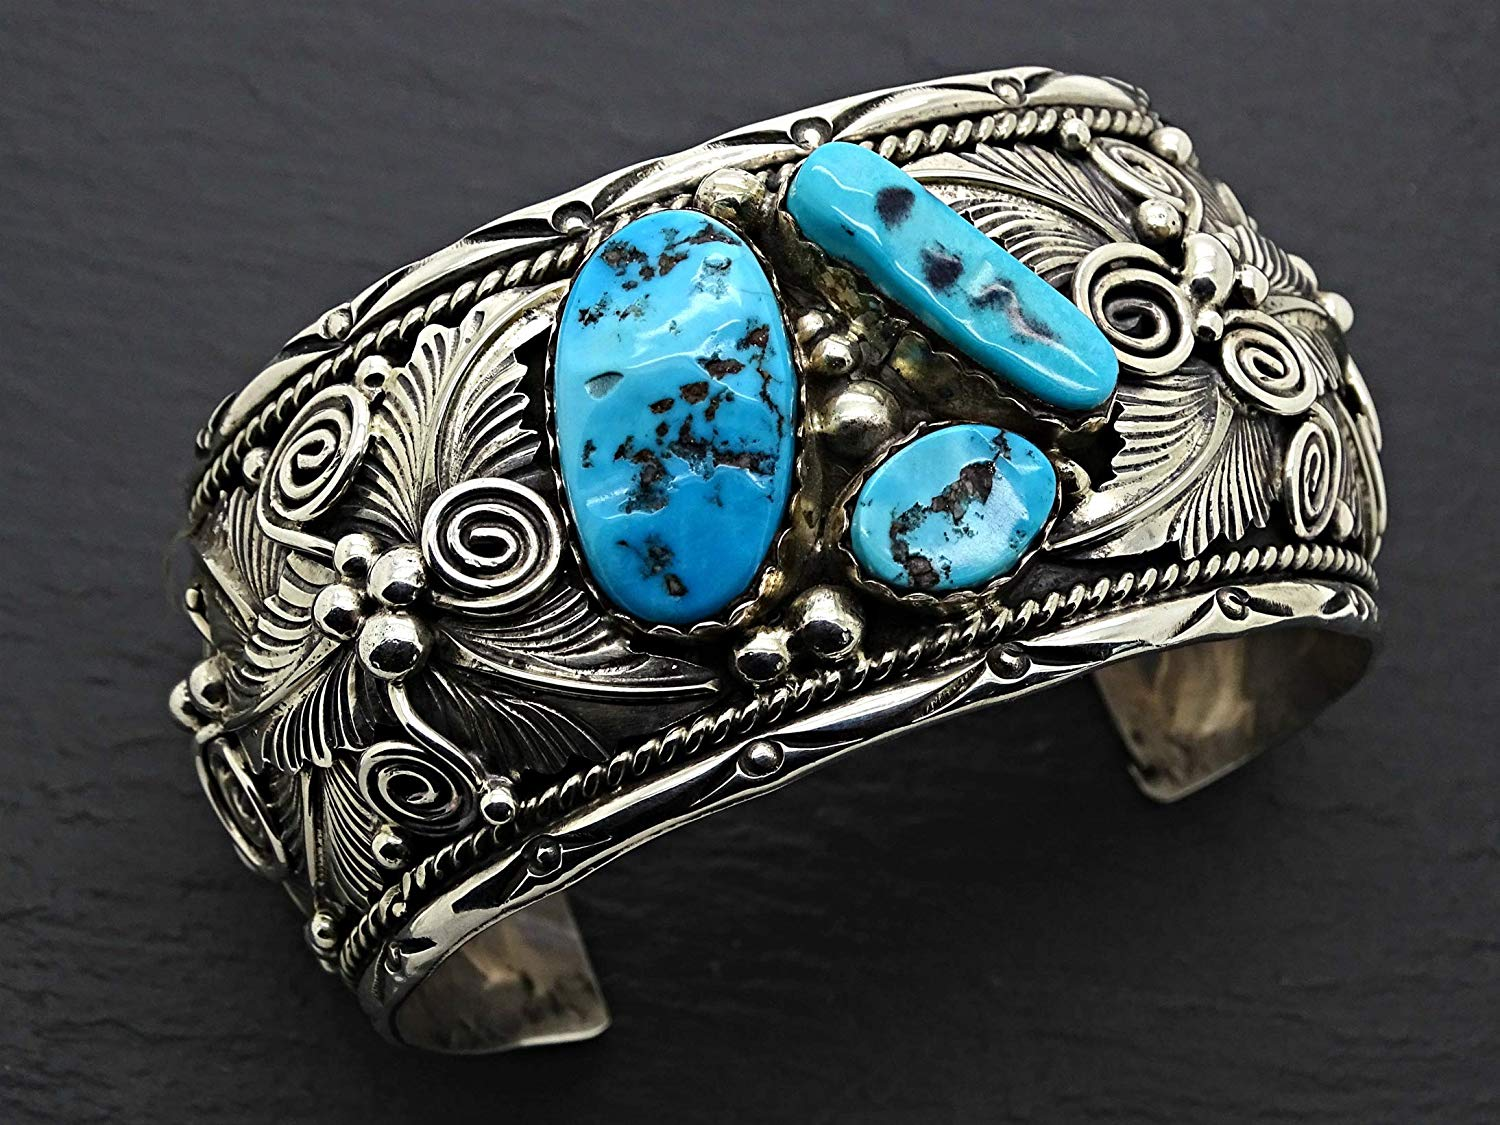 big mens cuff turquoise silver, Native American cuff bracelet Navajo turquoise cuff, large turquoise cuff bracelet silver, Navajo jewelry